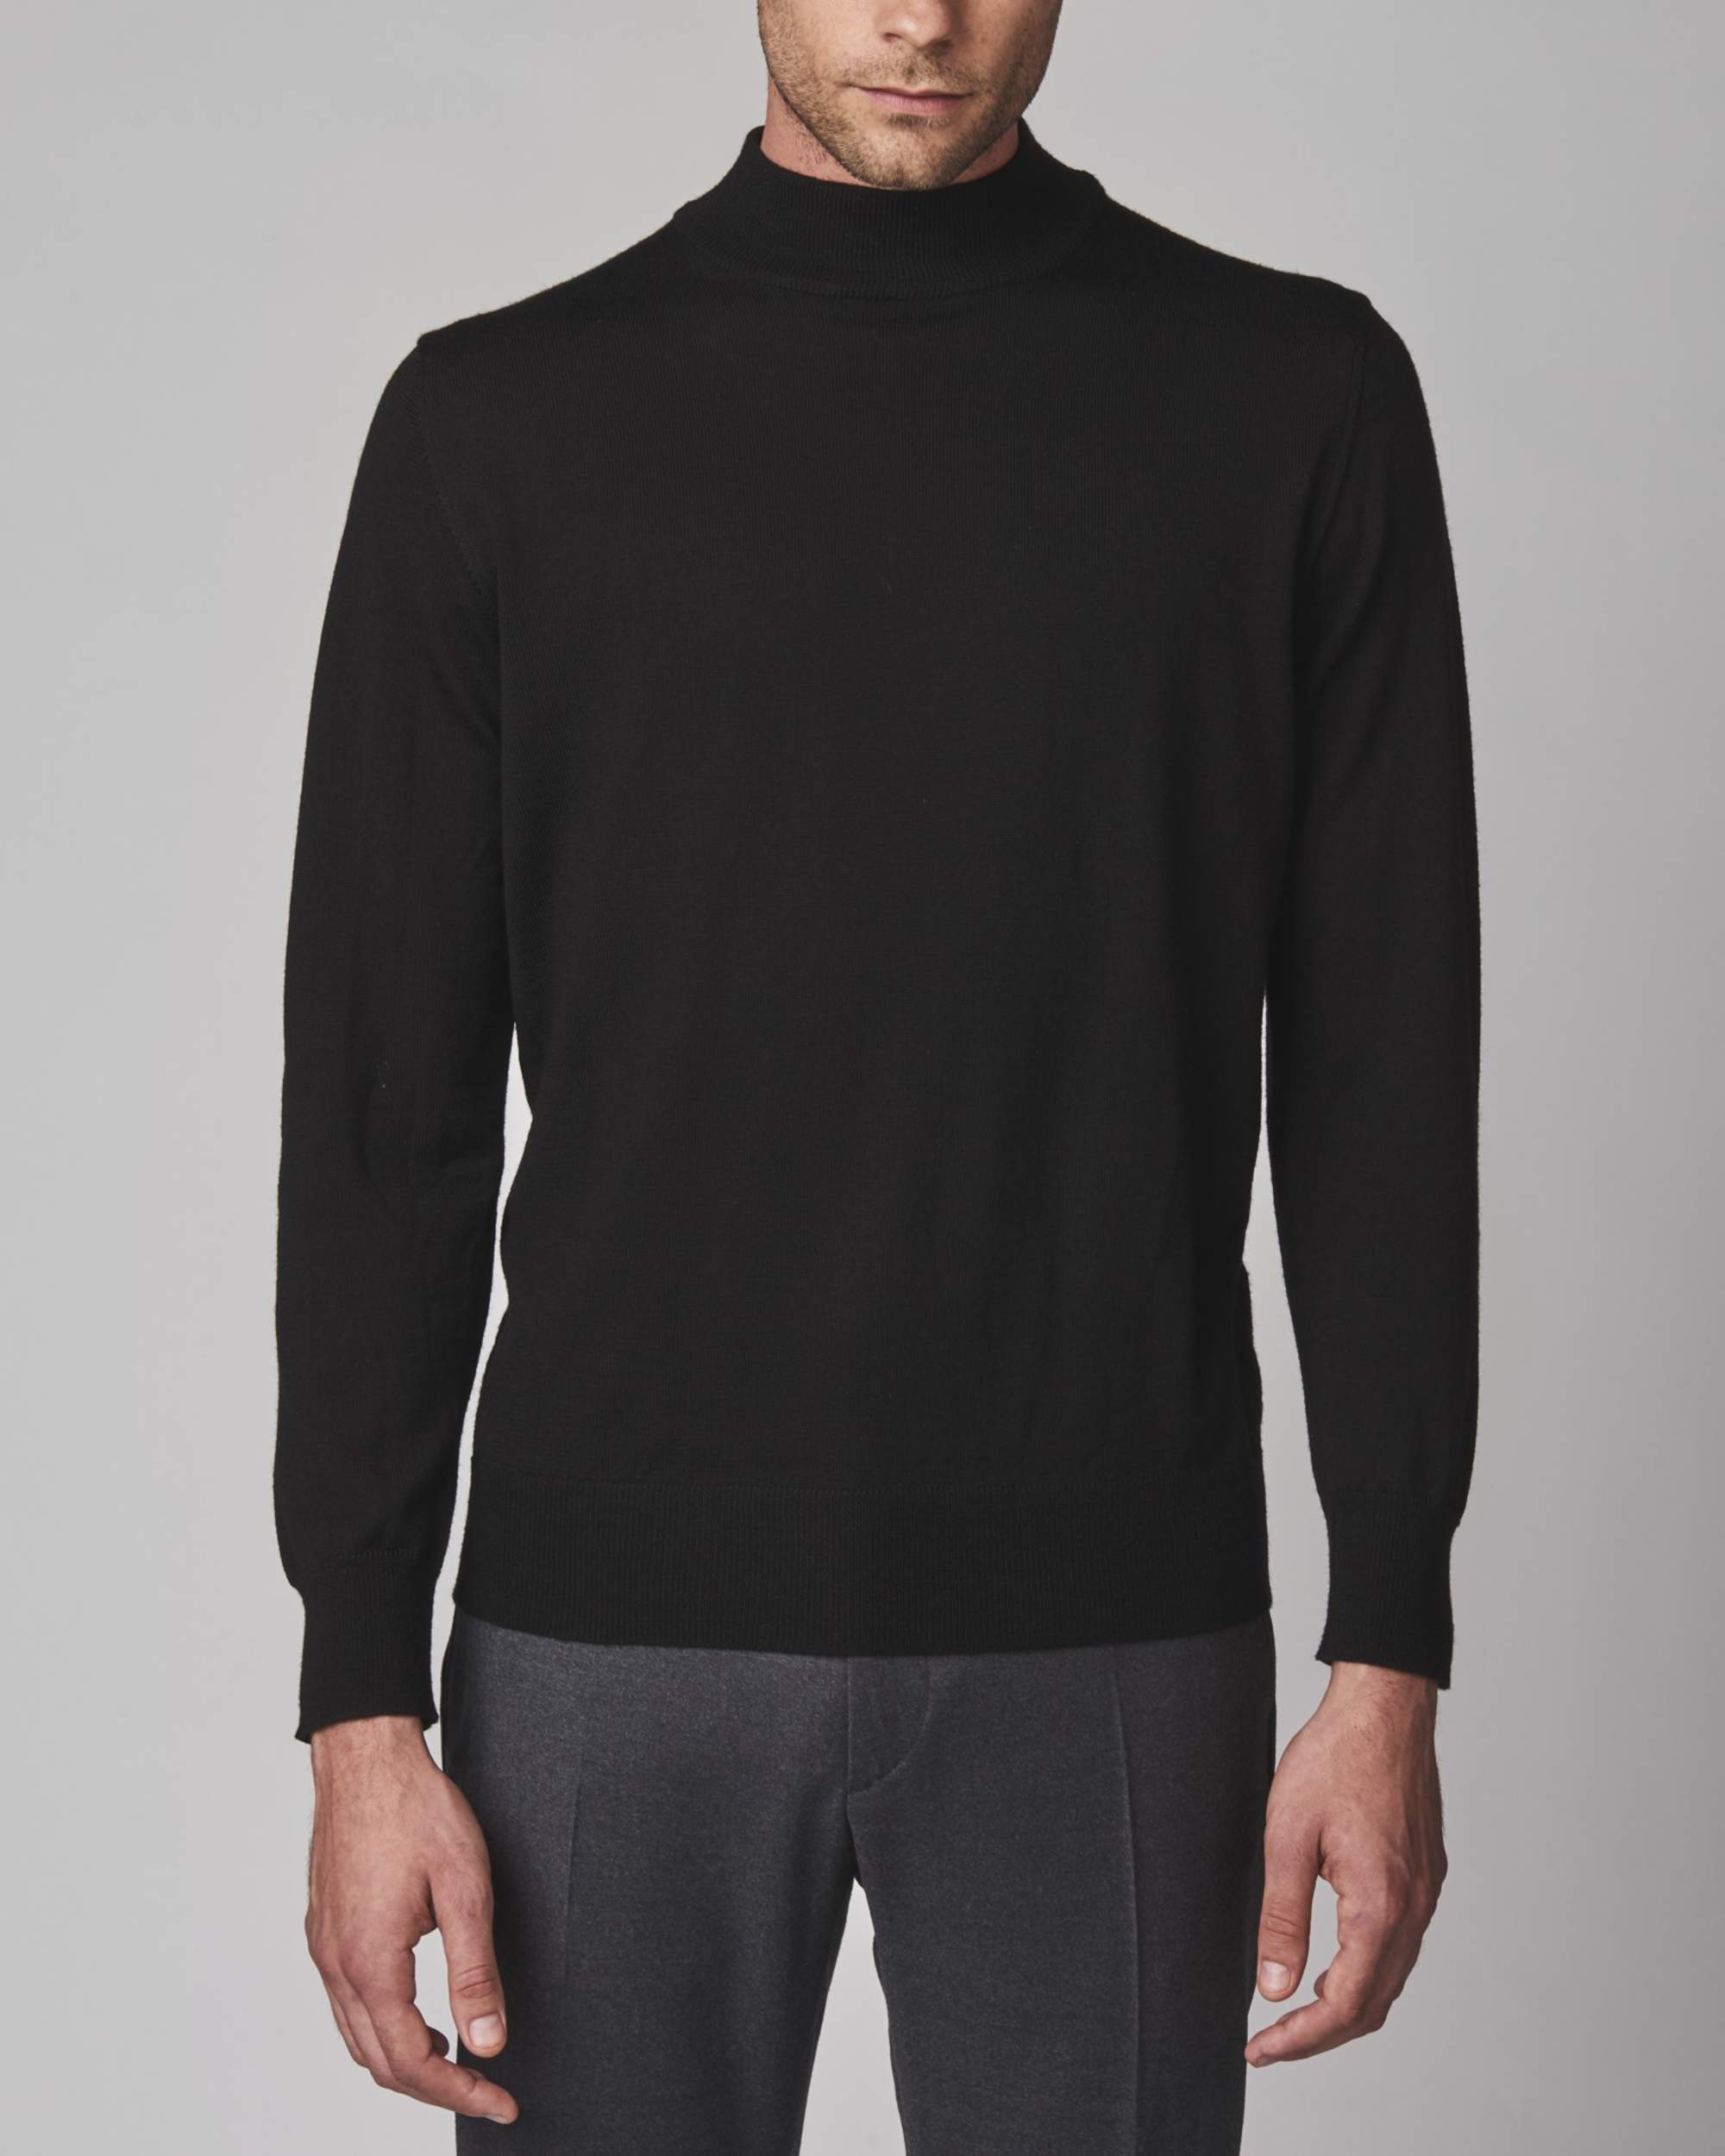 Zanella Merino Wool Mock Neck Knit Sweaters